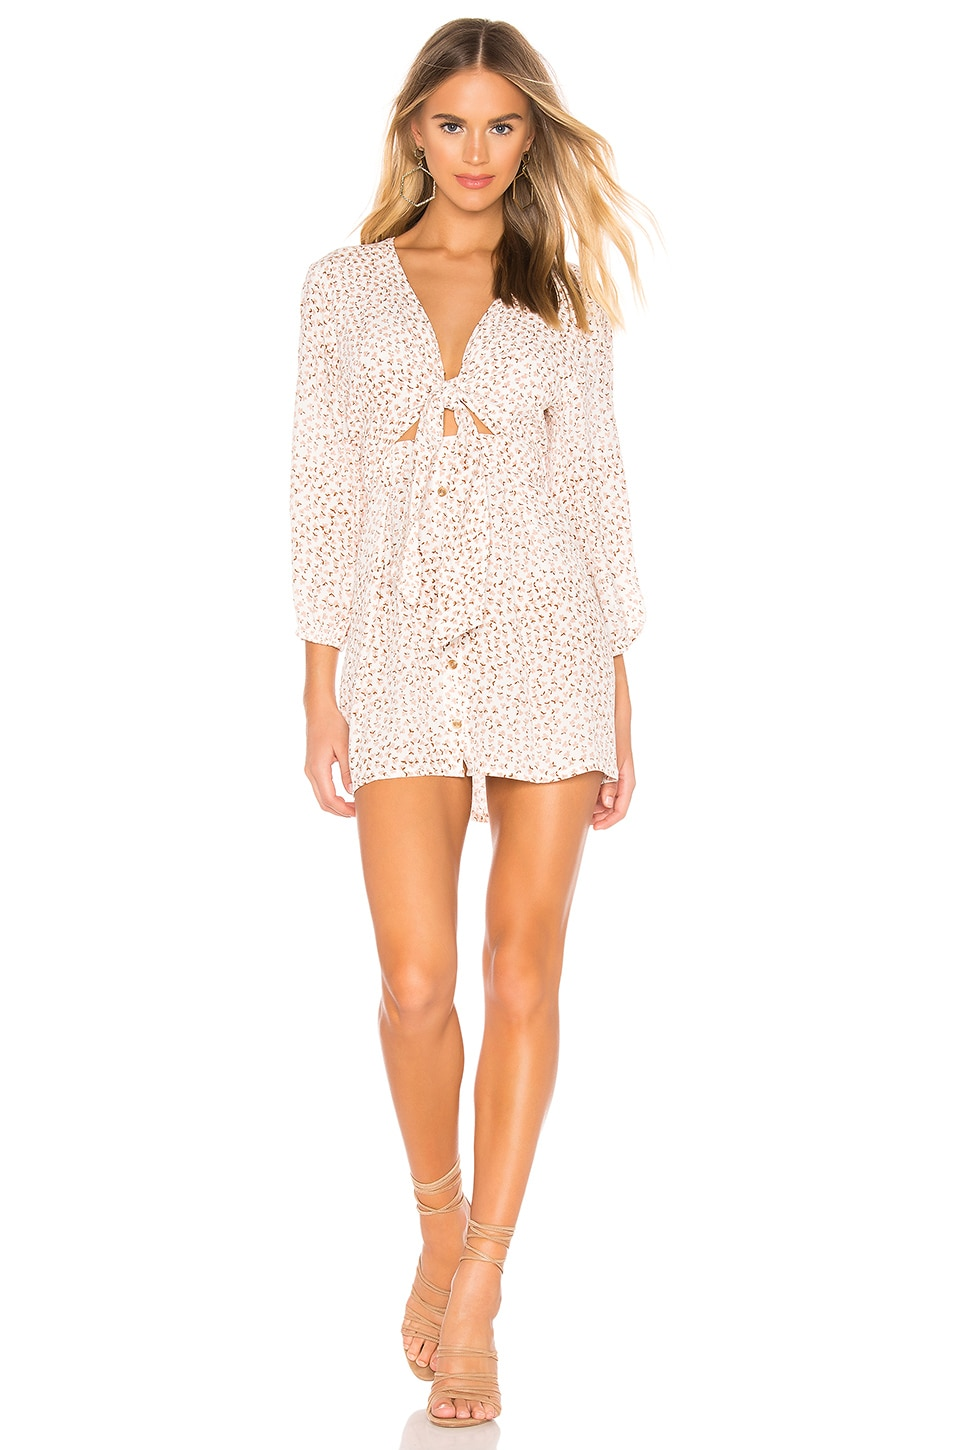 89a8aff3db Faithfull The Brand Trinidad Tie-Front Floral-Print Crinkled-Crepe Mini  Dress In